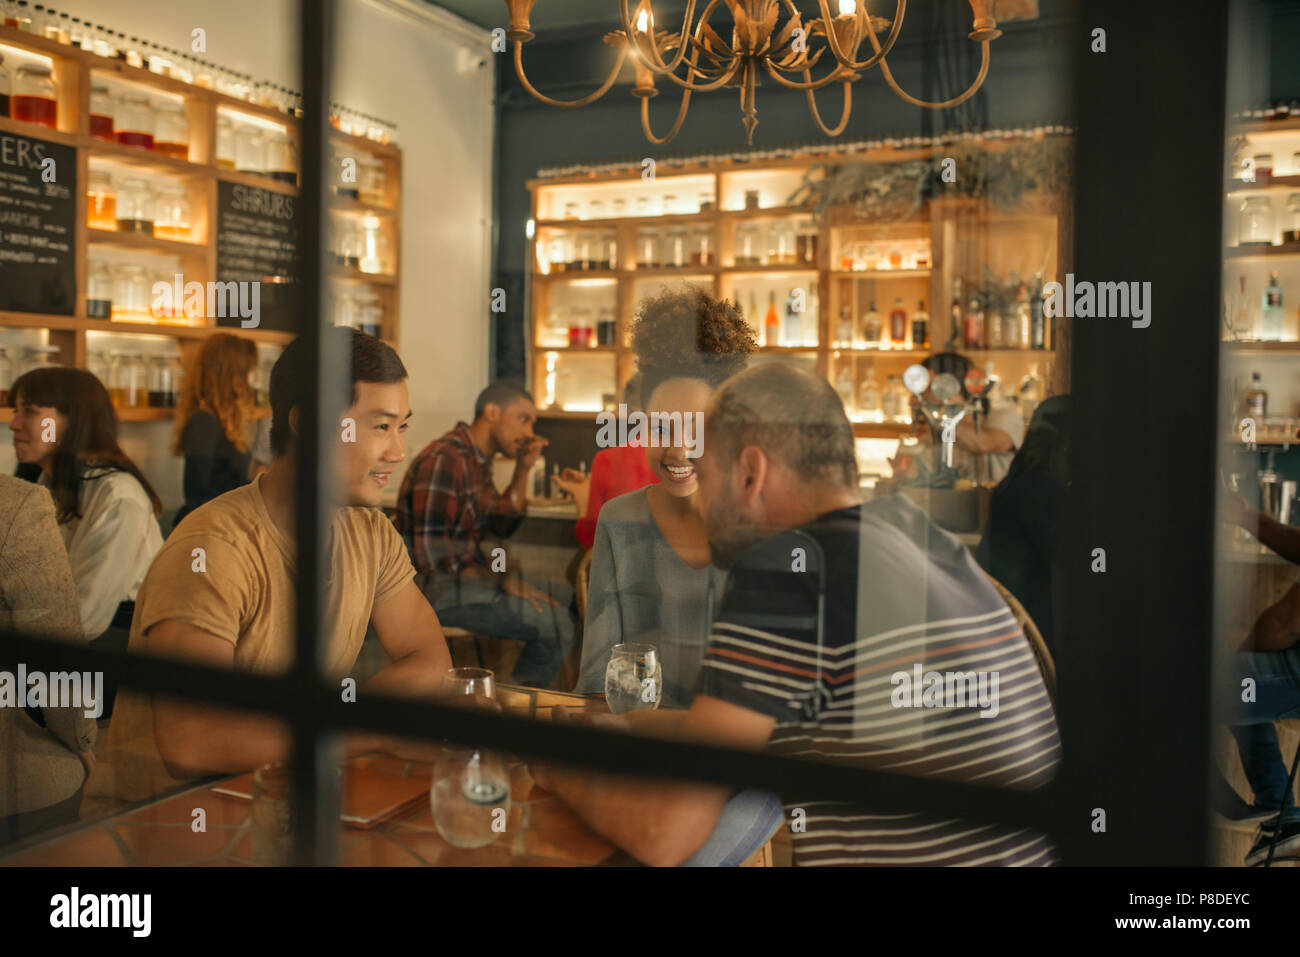 Smiling young friends sitting in a bar having drinks together - Stock Image